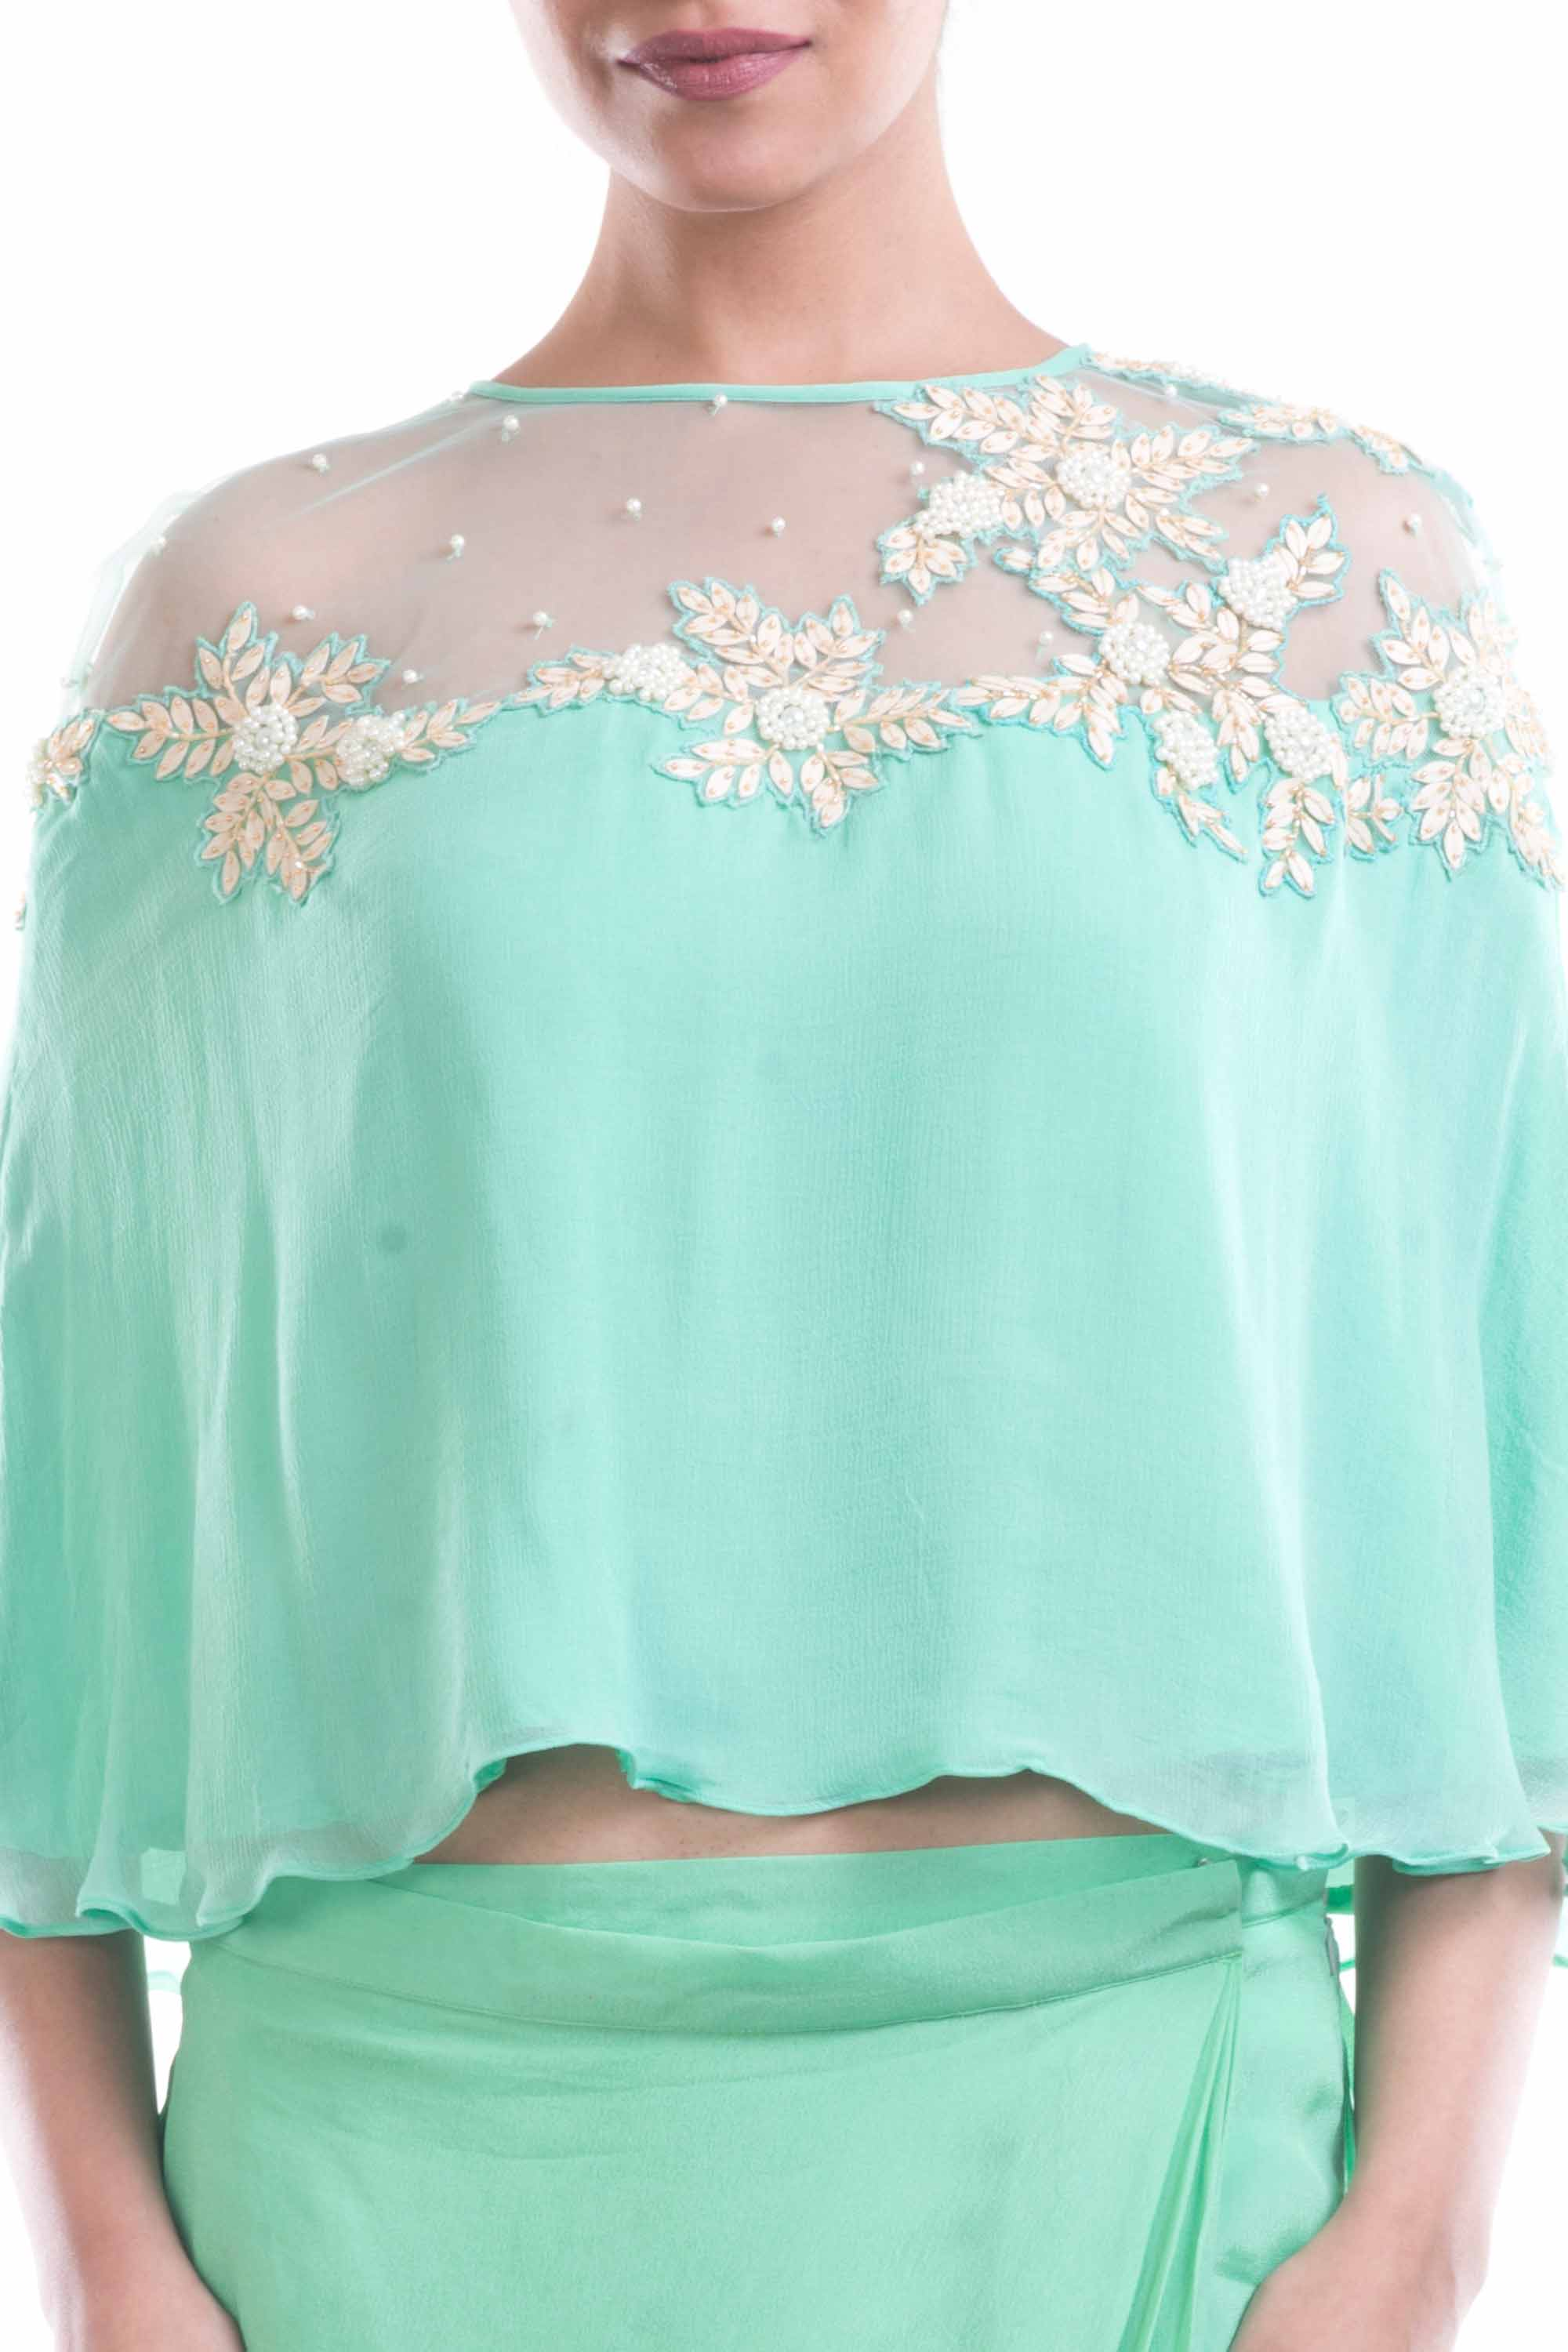 Aqua Blue Chiffon Cape With Wrap Dhoti Skirt Closeup